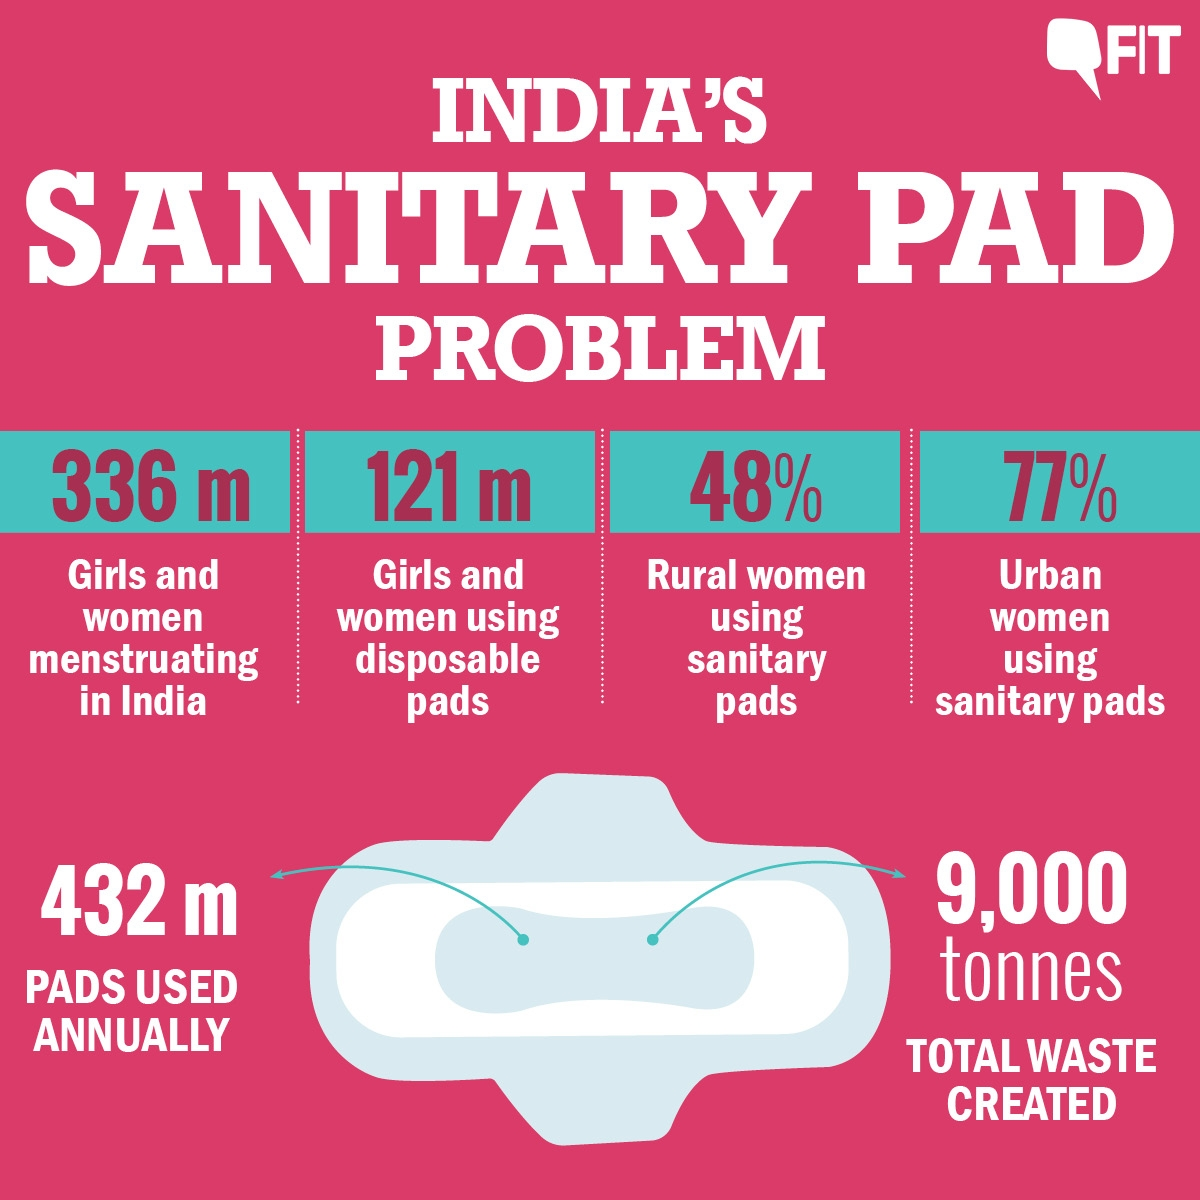 2018 World Environment Day: Periods, Menstruation and Non